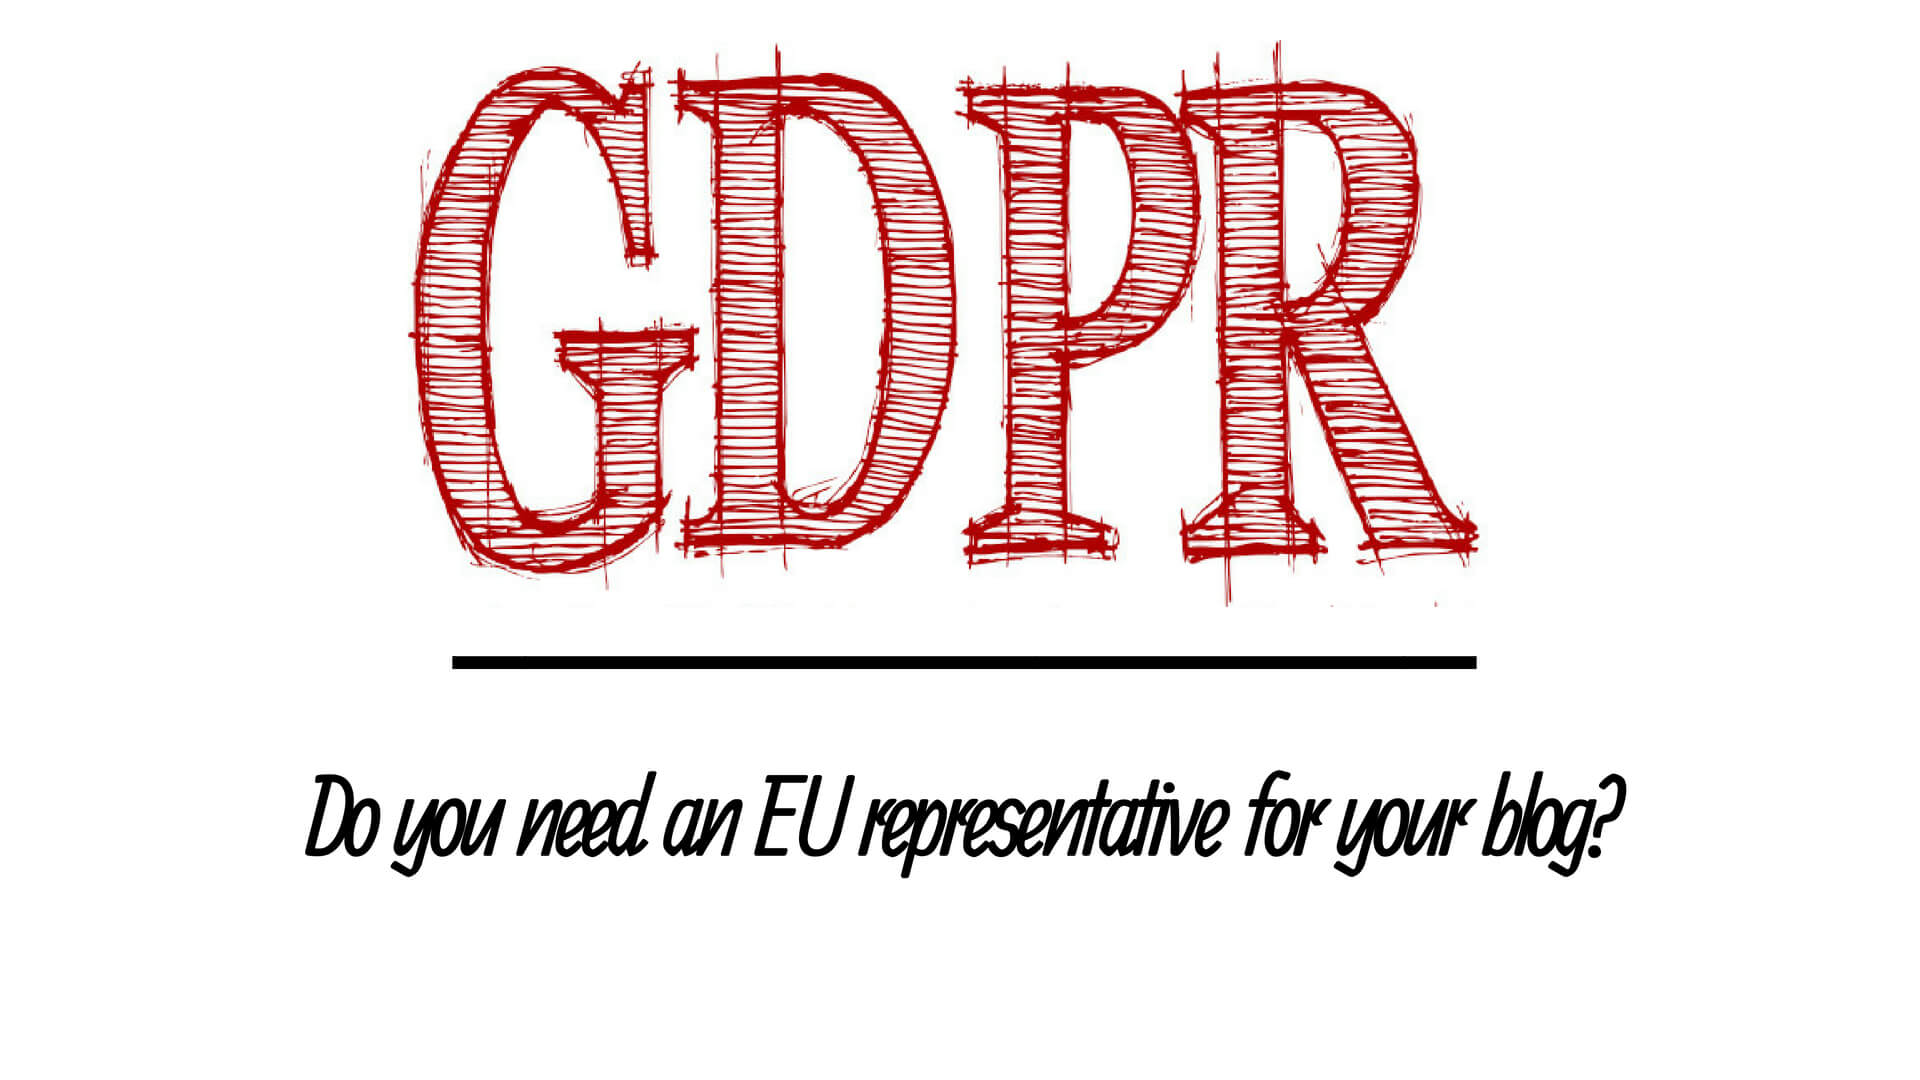 GDPR do you need an EU representative for your blog